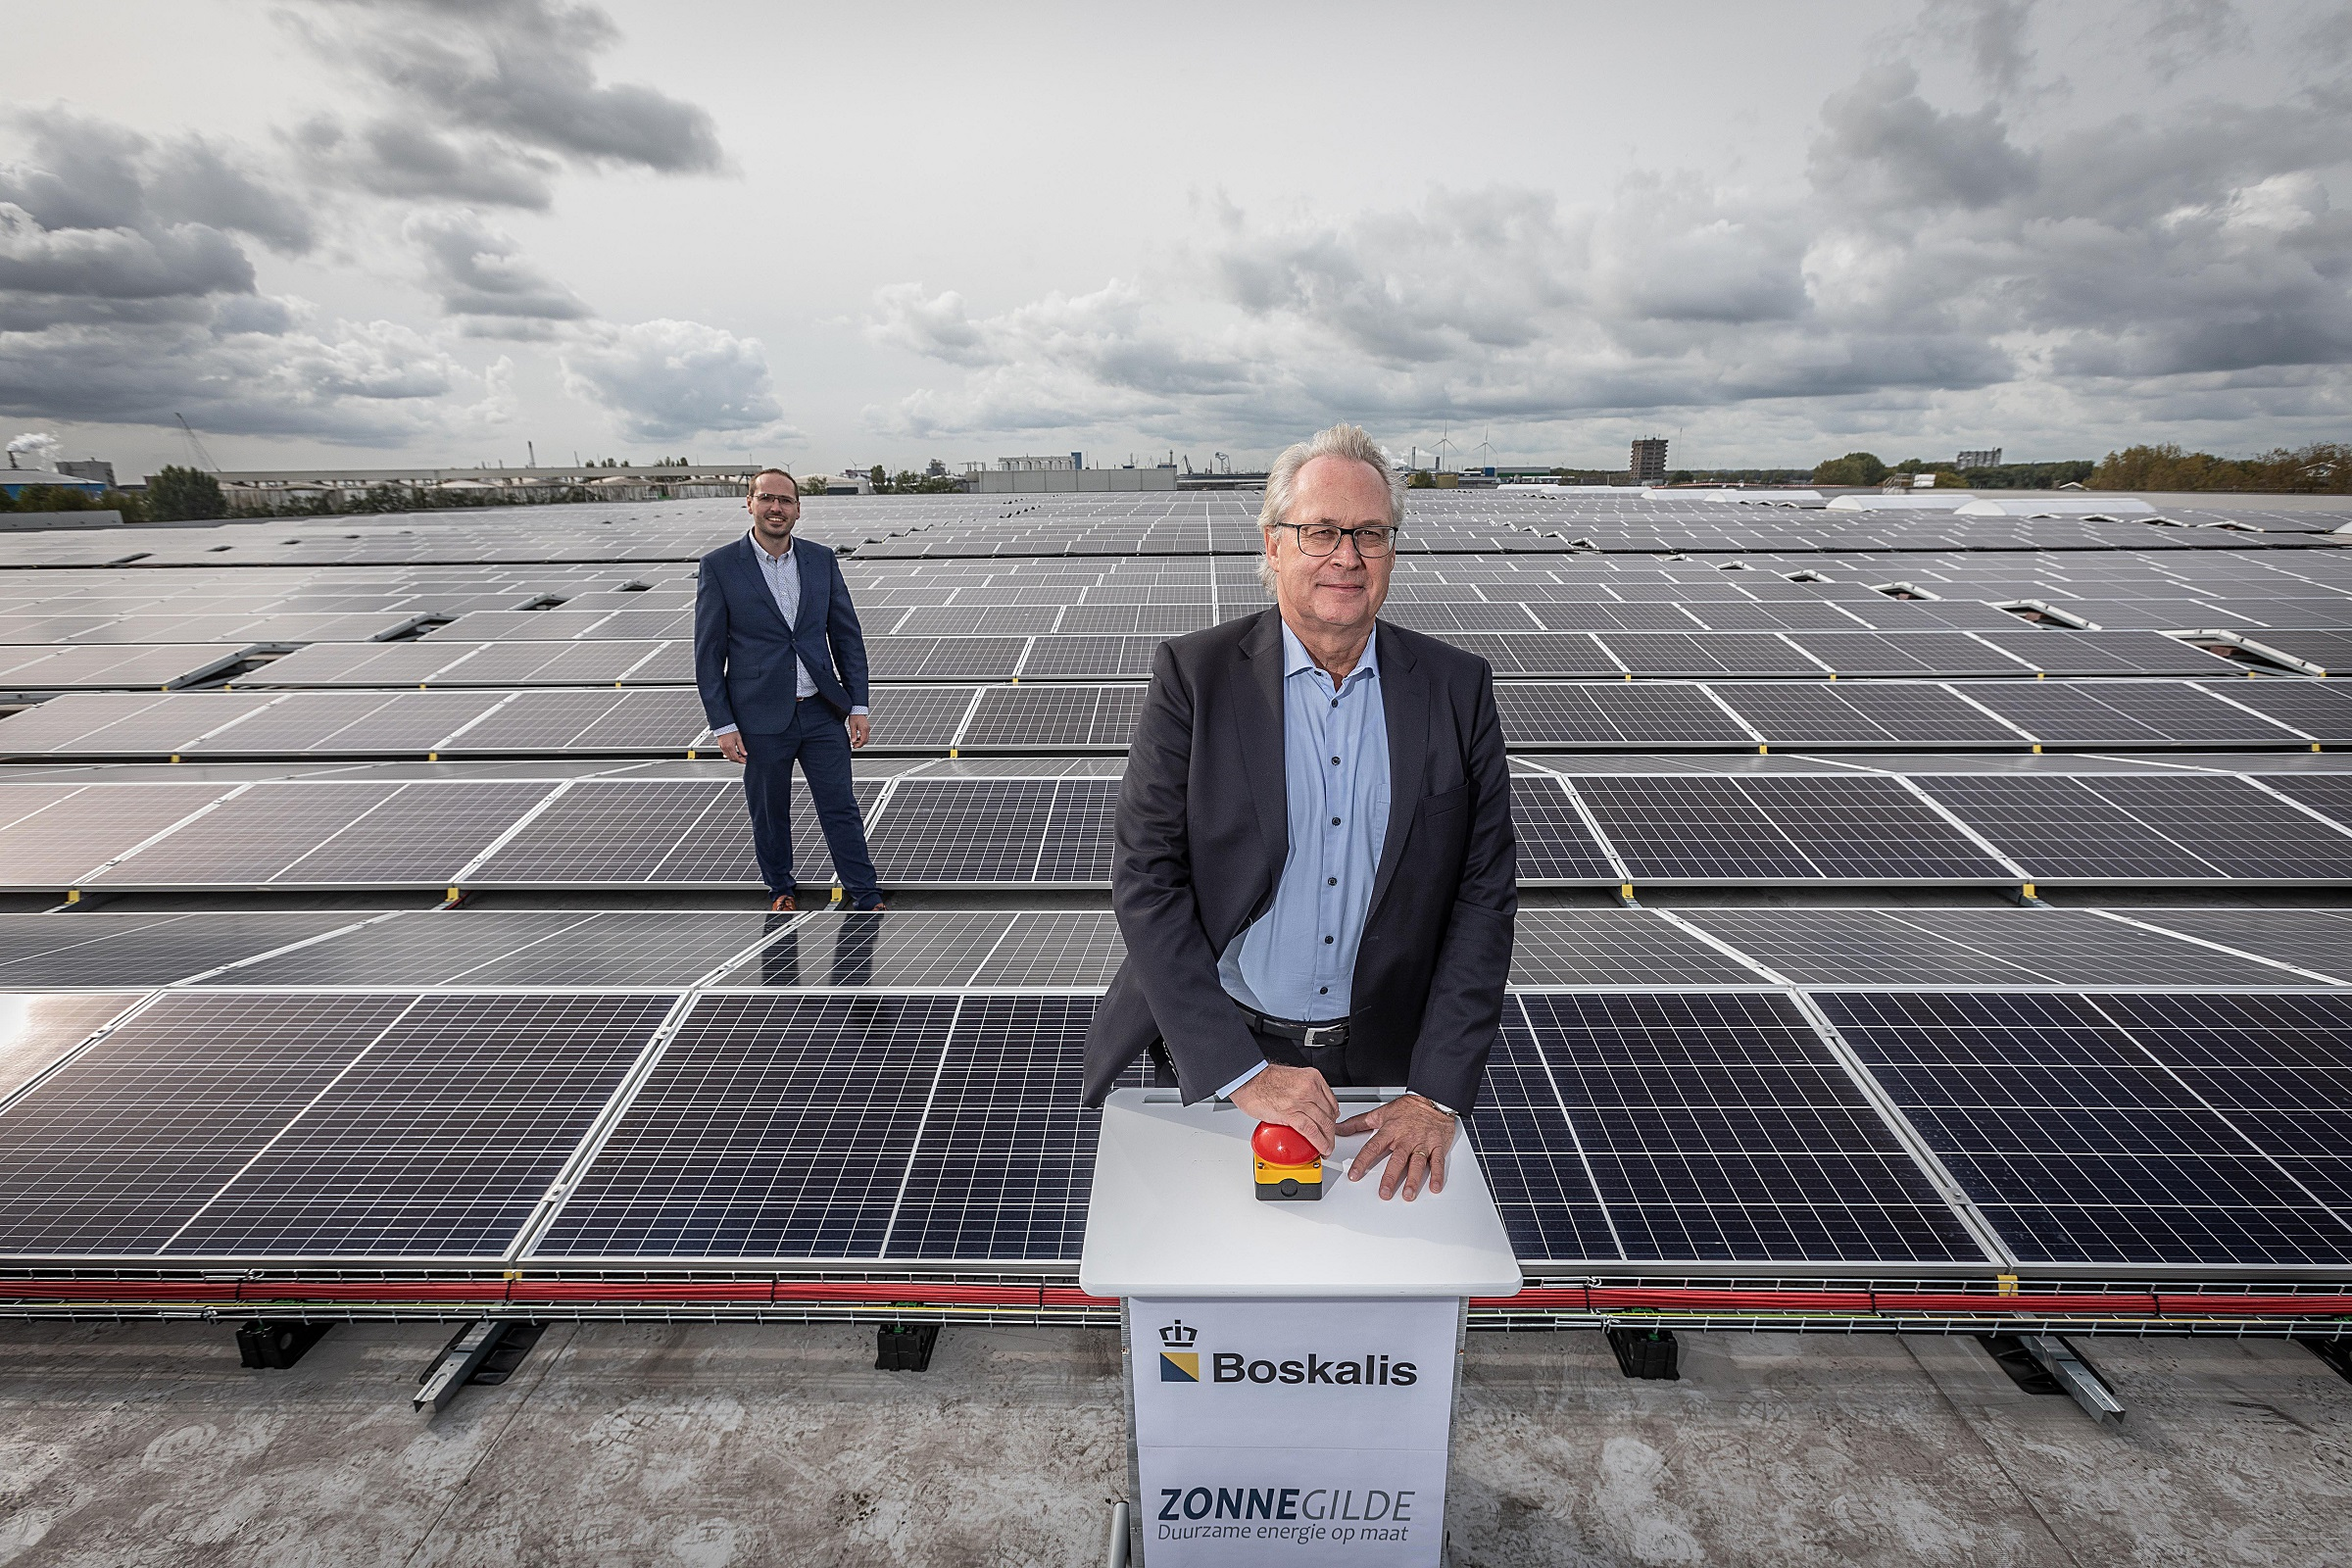 Boskalis takes 5,350 solar panels into use, representing 15% of own energy consumption in the Netherlands